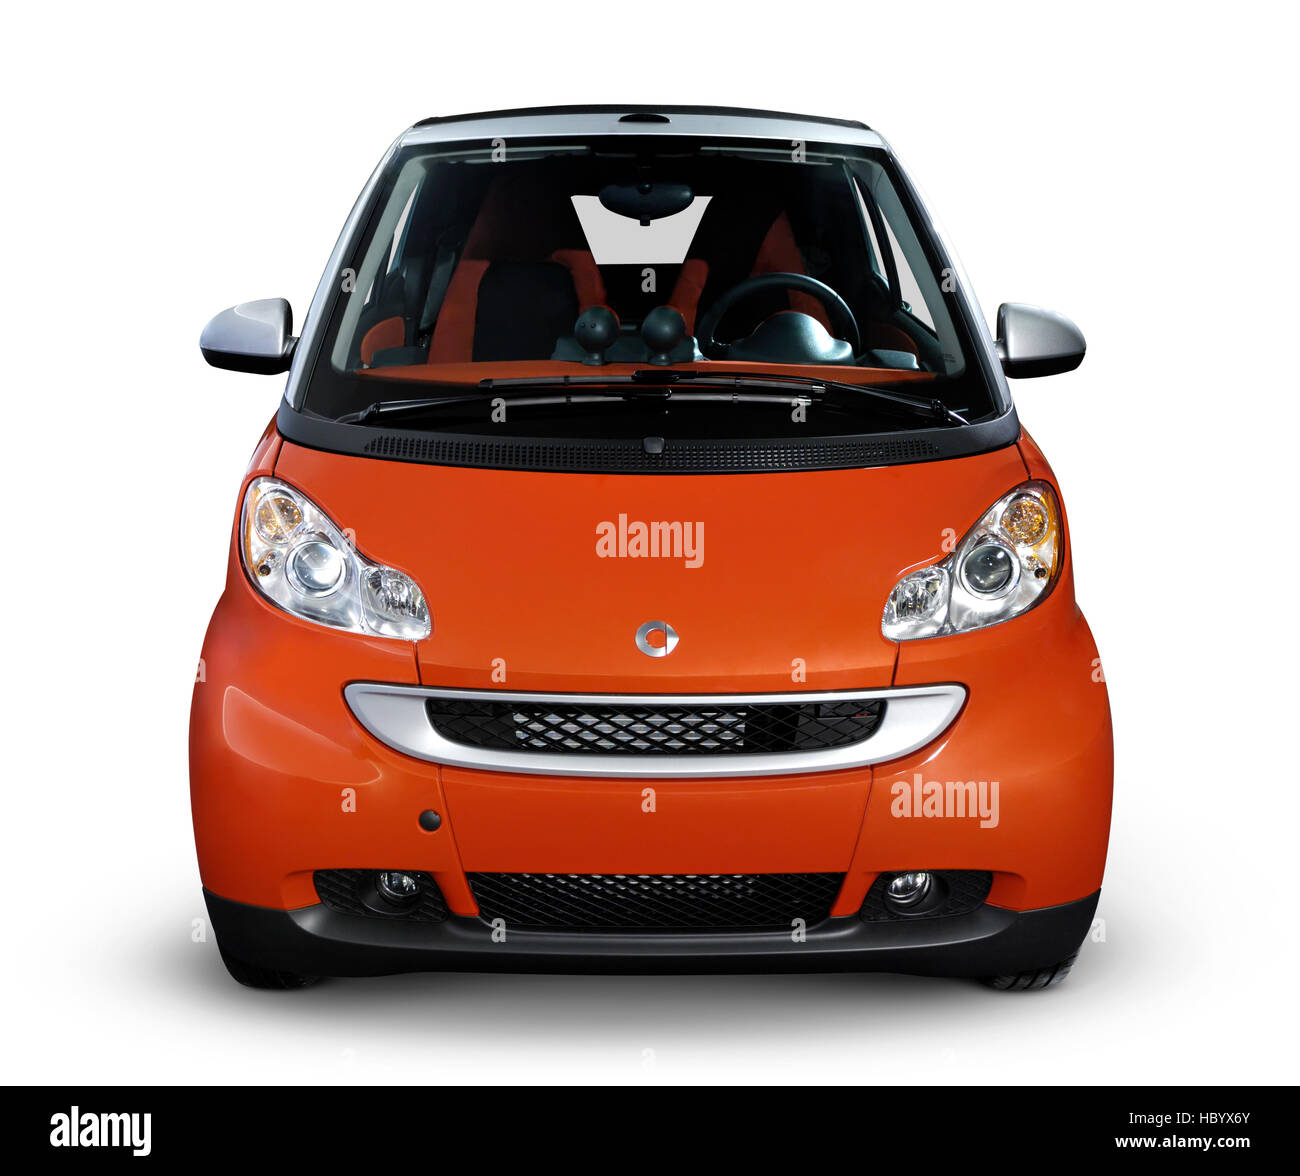 2008 Smart Fortwo, fuel efficient mini city car, front view - Stock Image